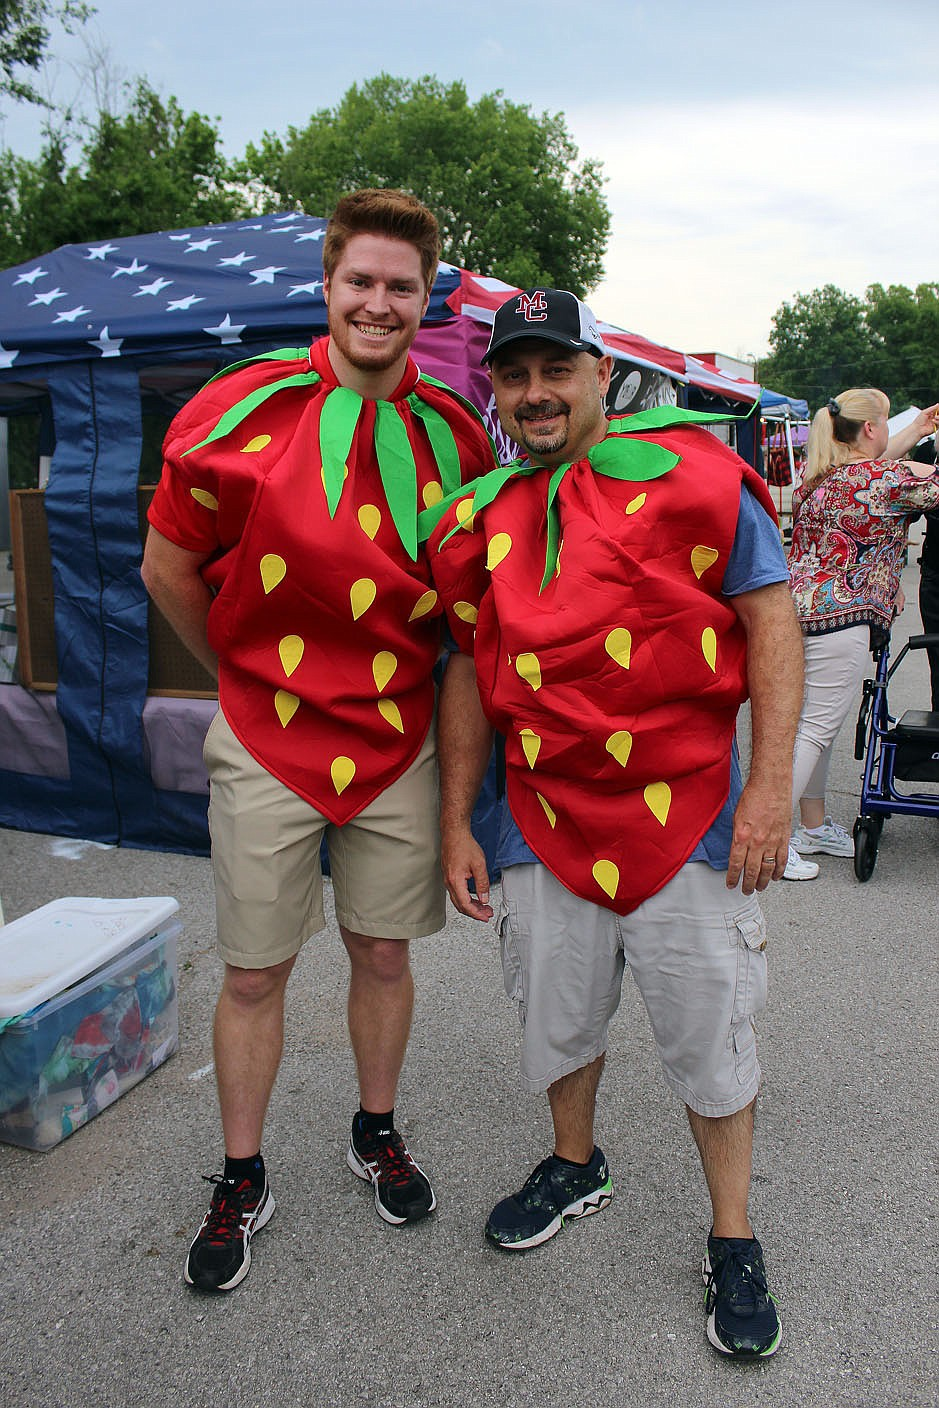 MEGAN DAVIS/MCDONALD COUNTY PRESS Despite there being no Little Mister Strawberry Pageant, Levi Stone and Gary Wasson dawned strawberry costumes and filtered through the crowd, entertaining spectators at the last festival.